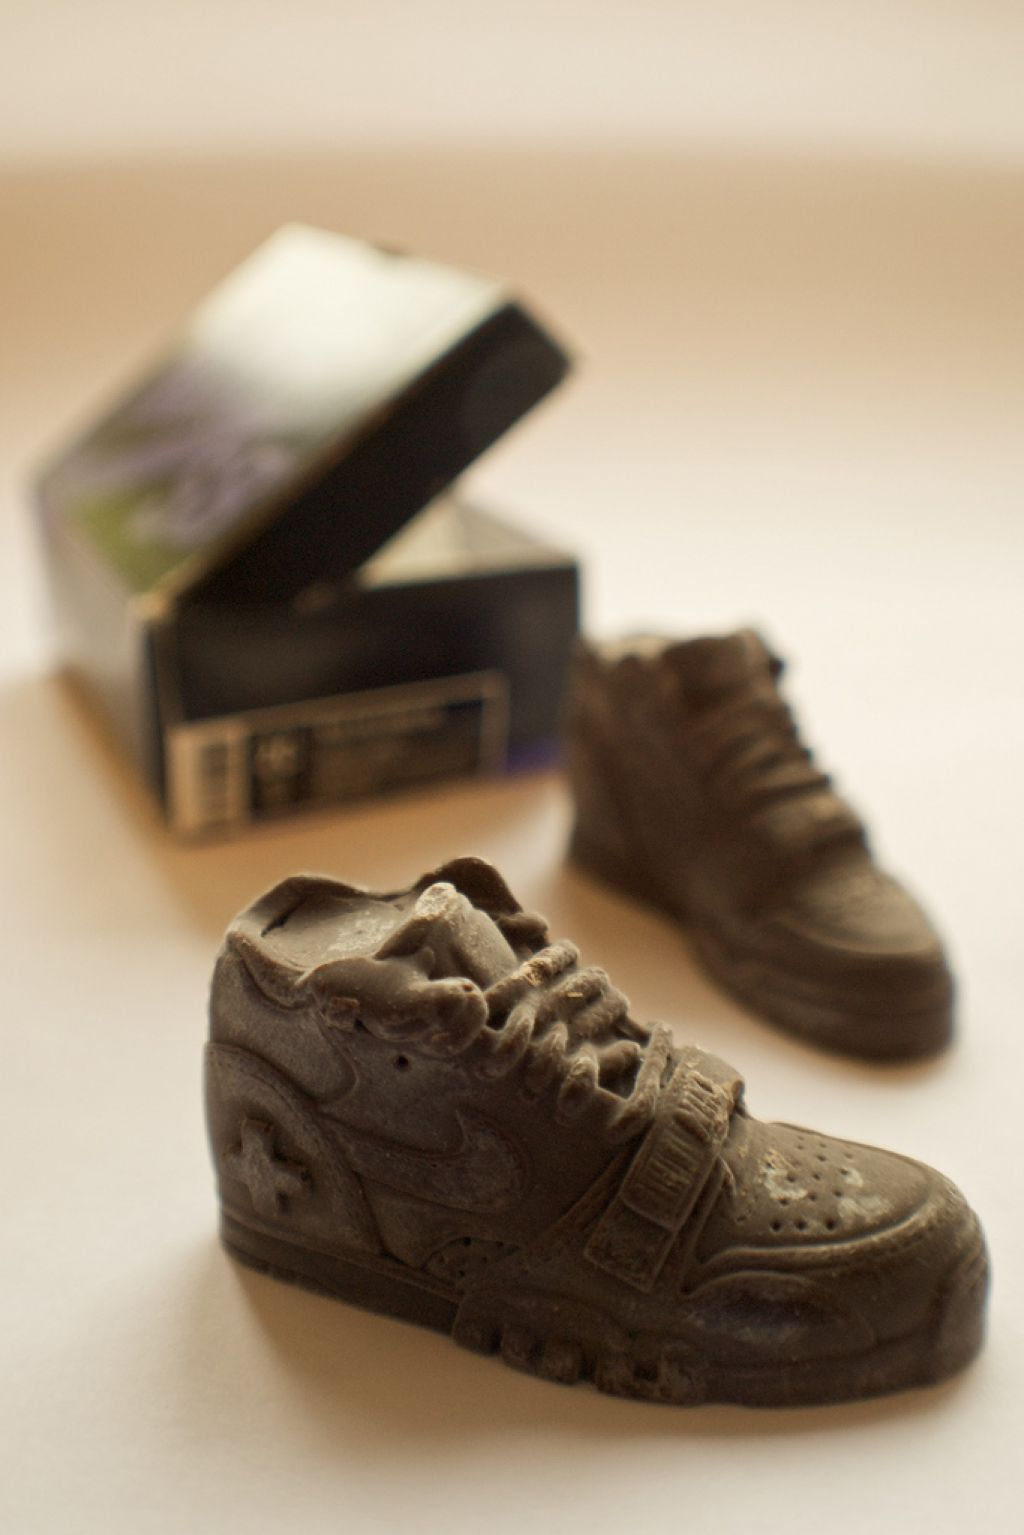 nike air Nike Air Shoes Made of Chocolate